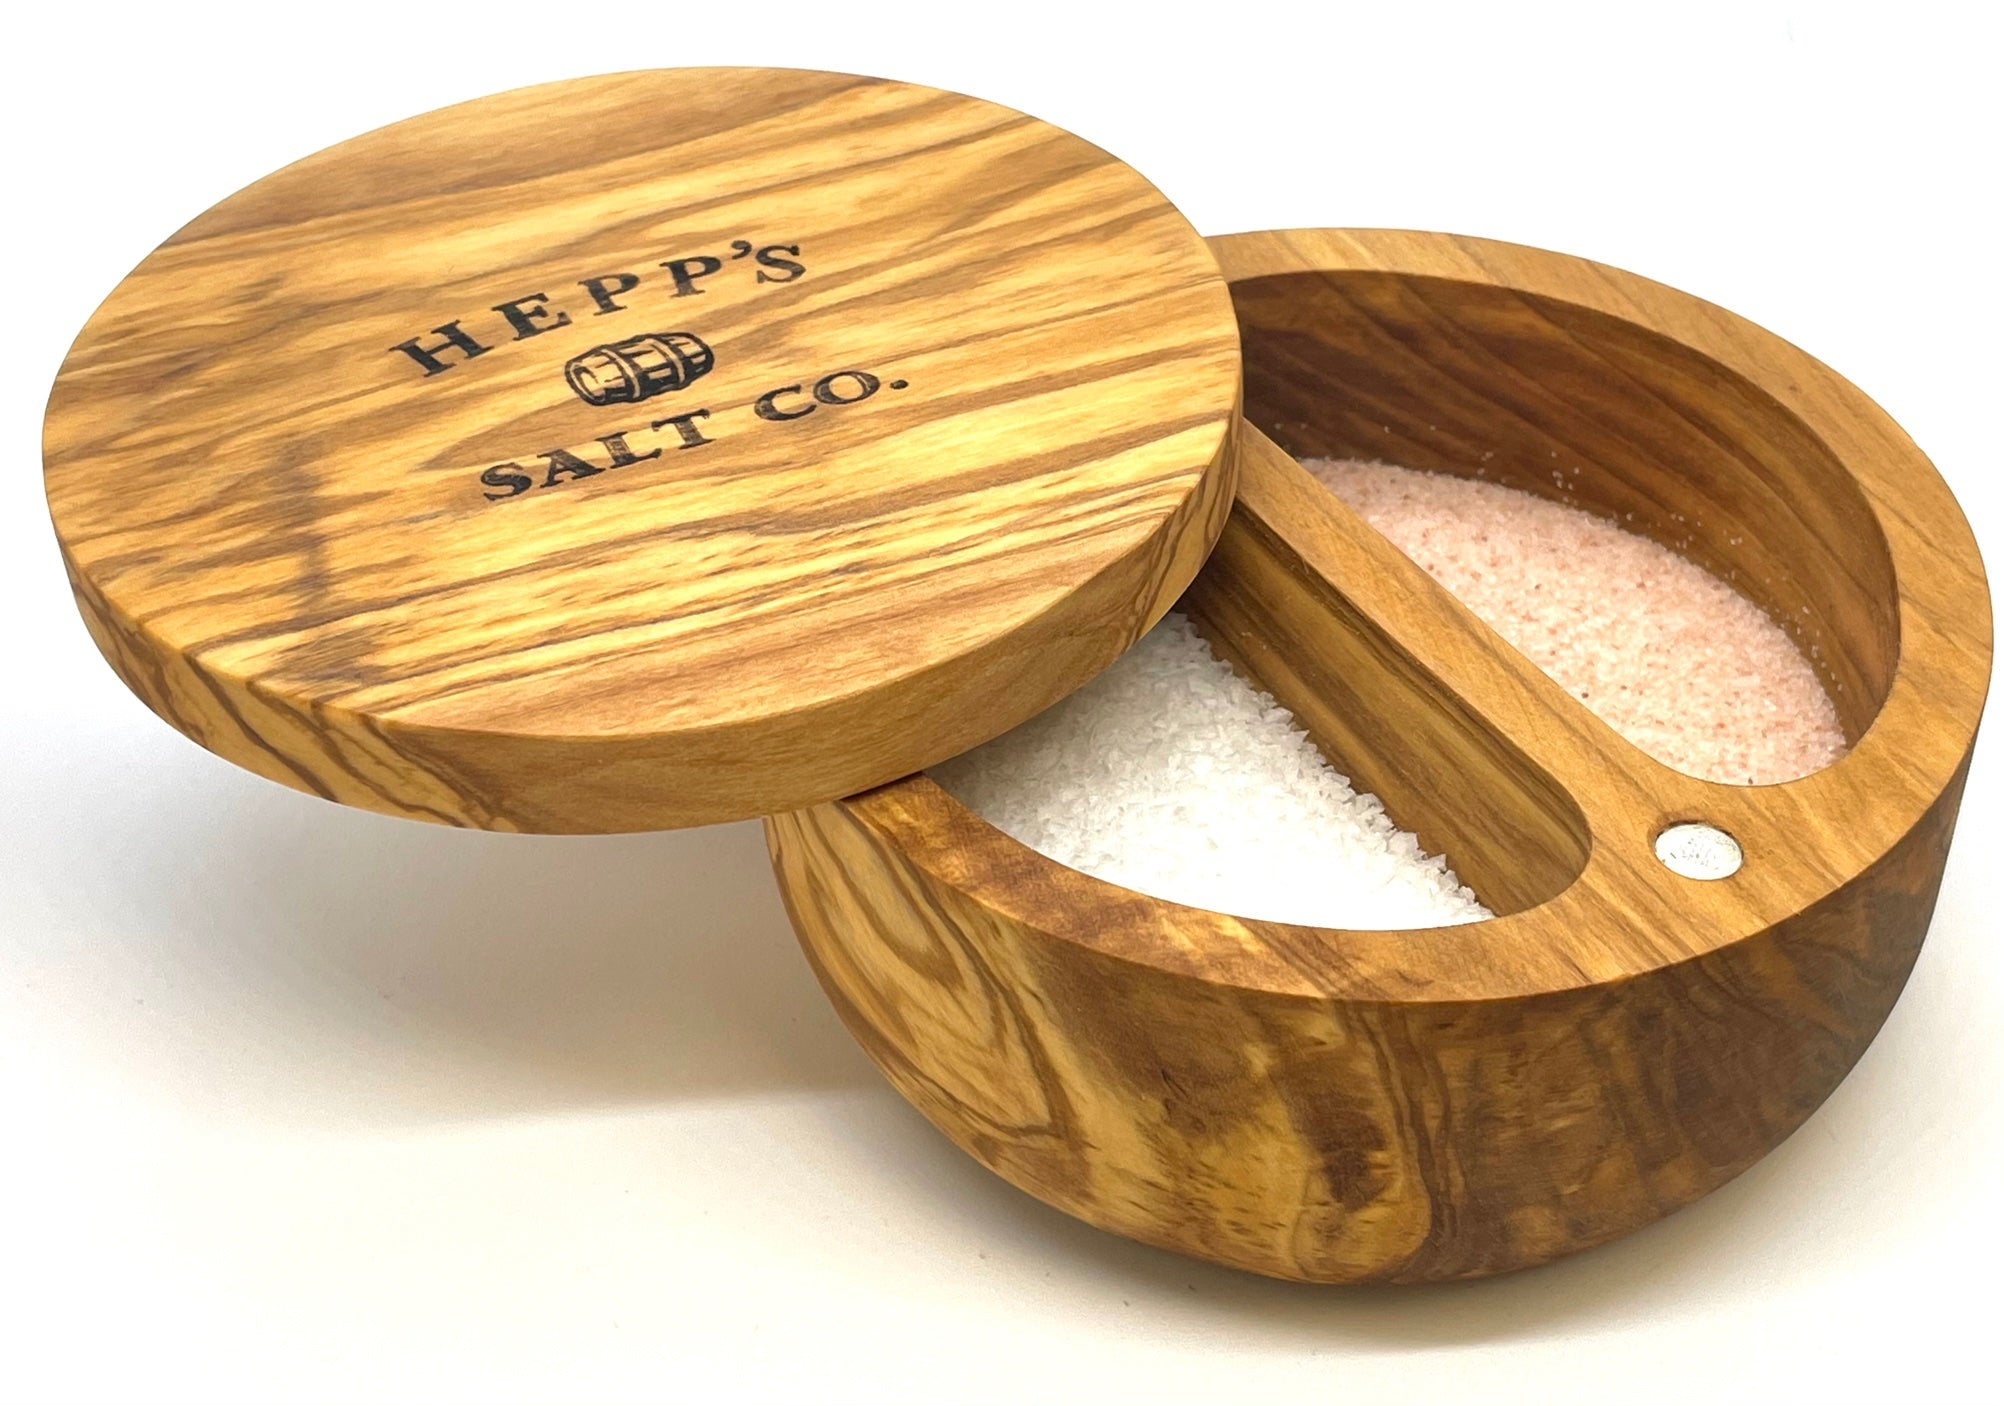 Olive Wood Wooden Salt Box - HEPPS SALT CO.